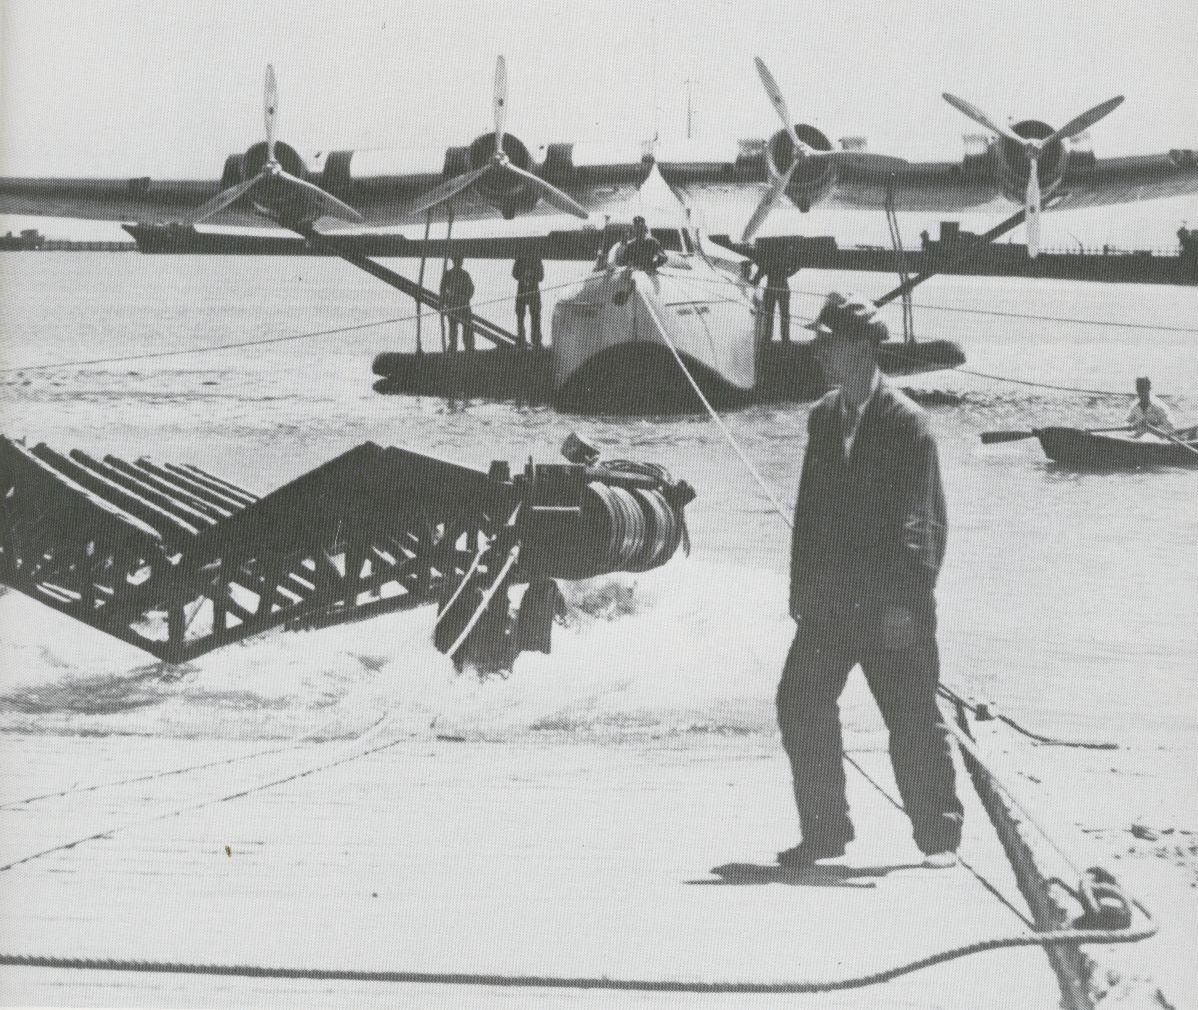 1930s beaching a Martin M130 flying boat